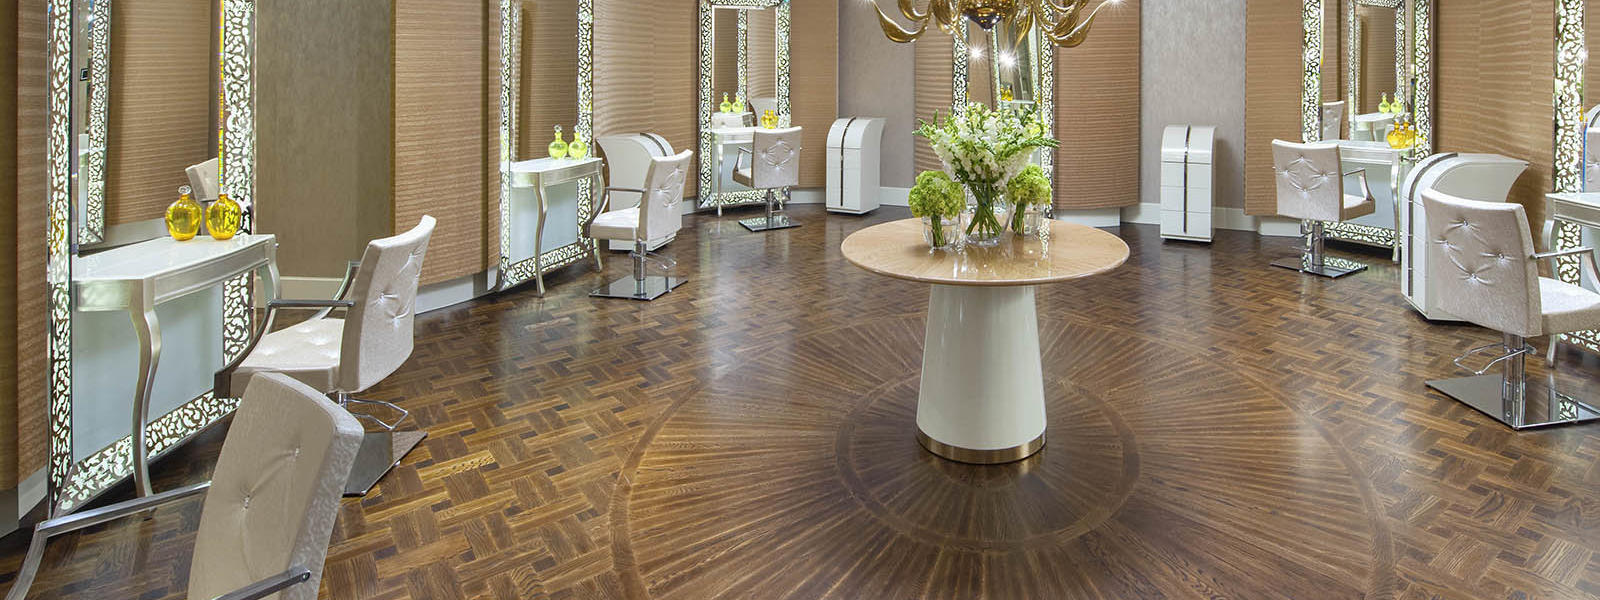 Haircuts at Crown Hotel Melourne